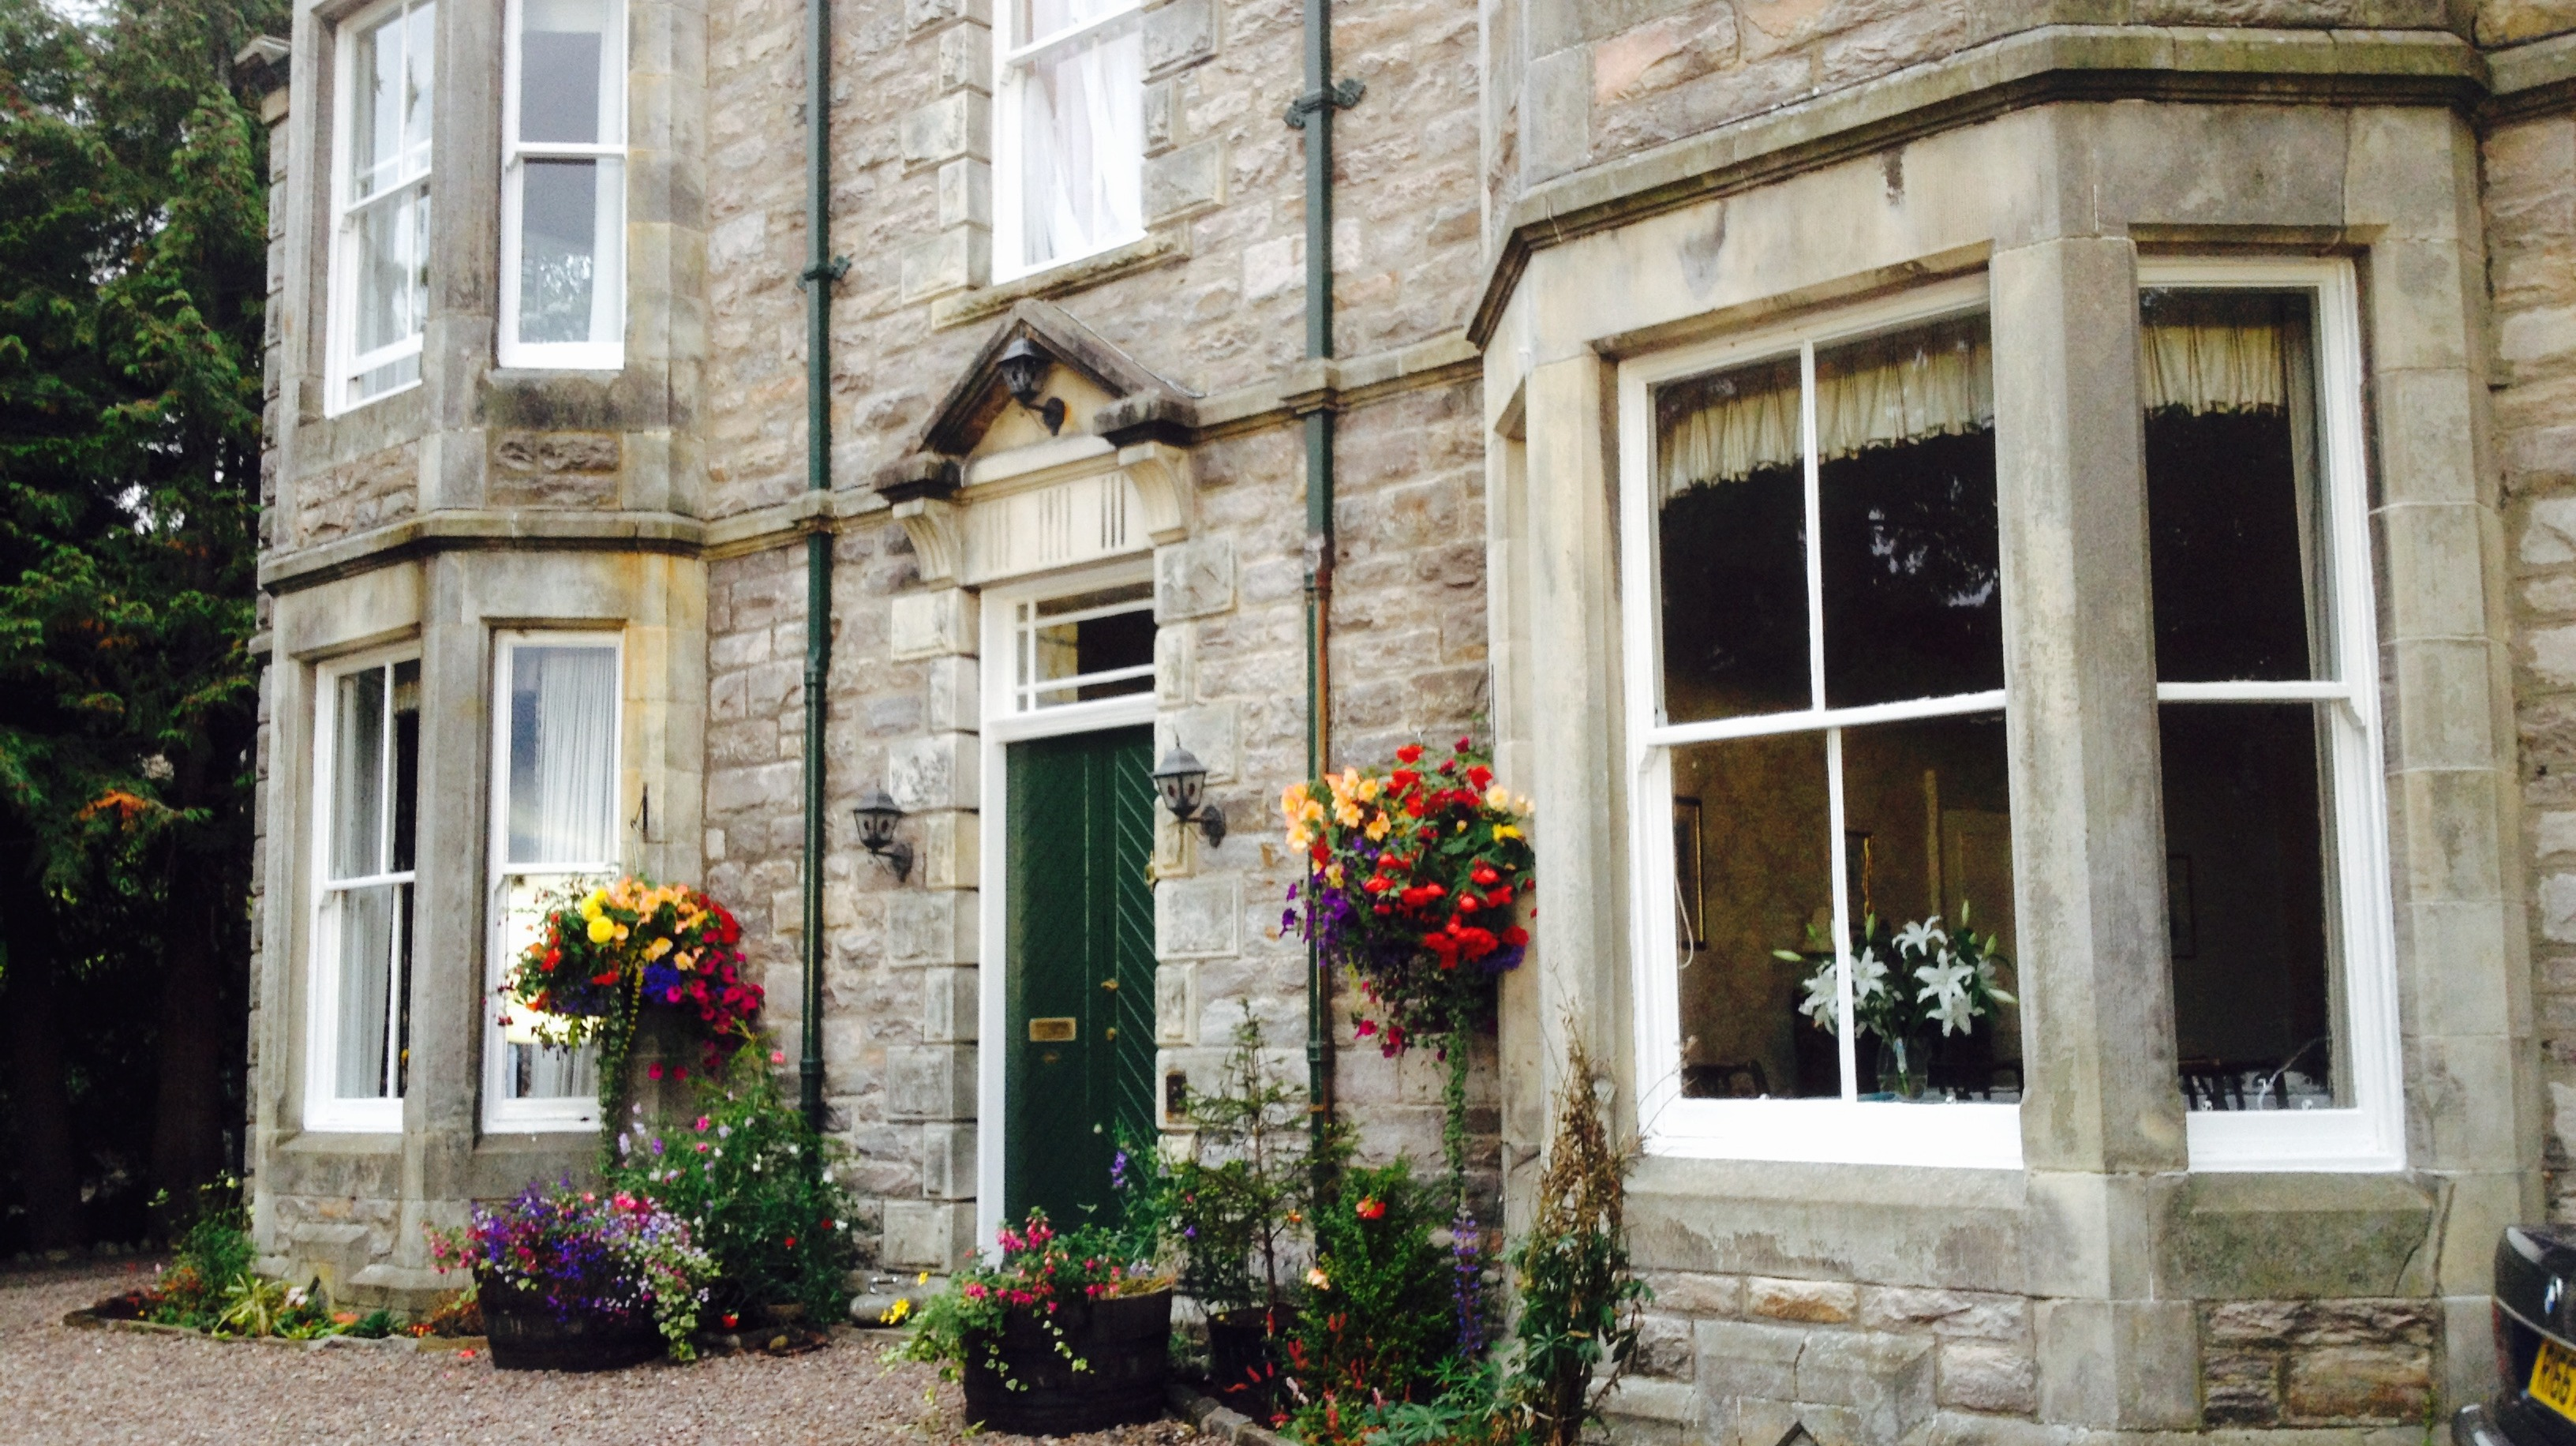 Northlands Bed and Breakfast in Pitlochry